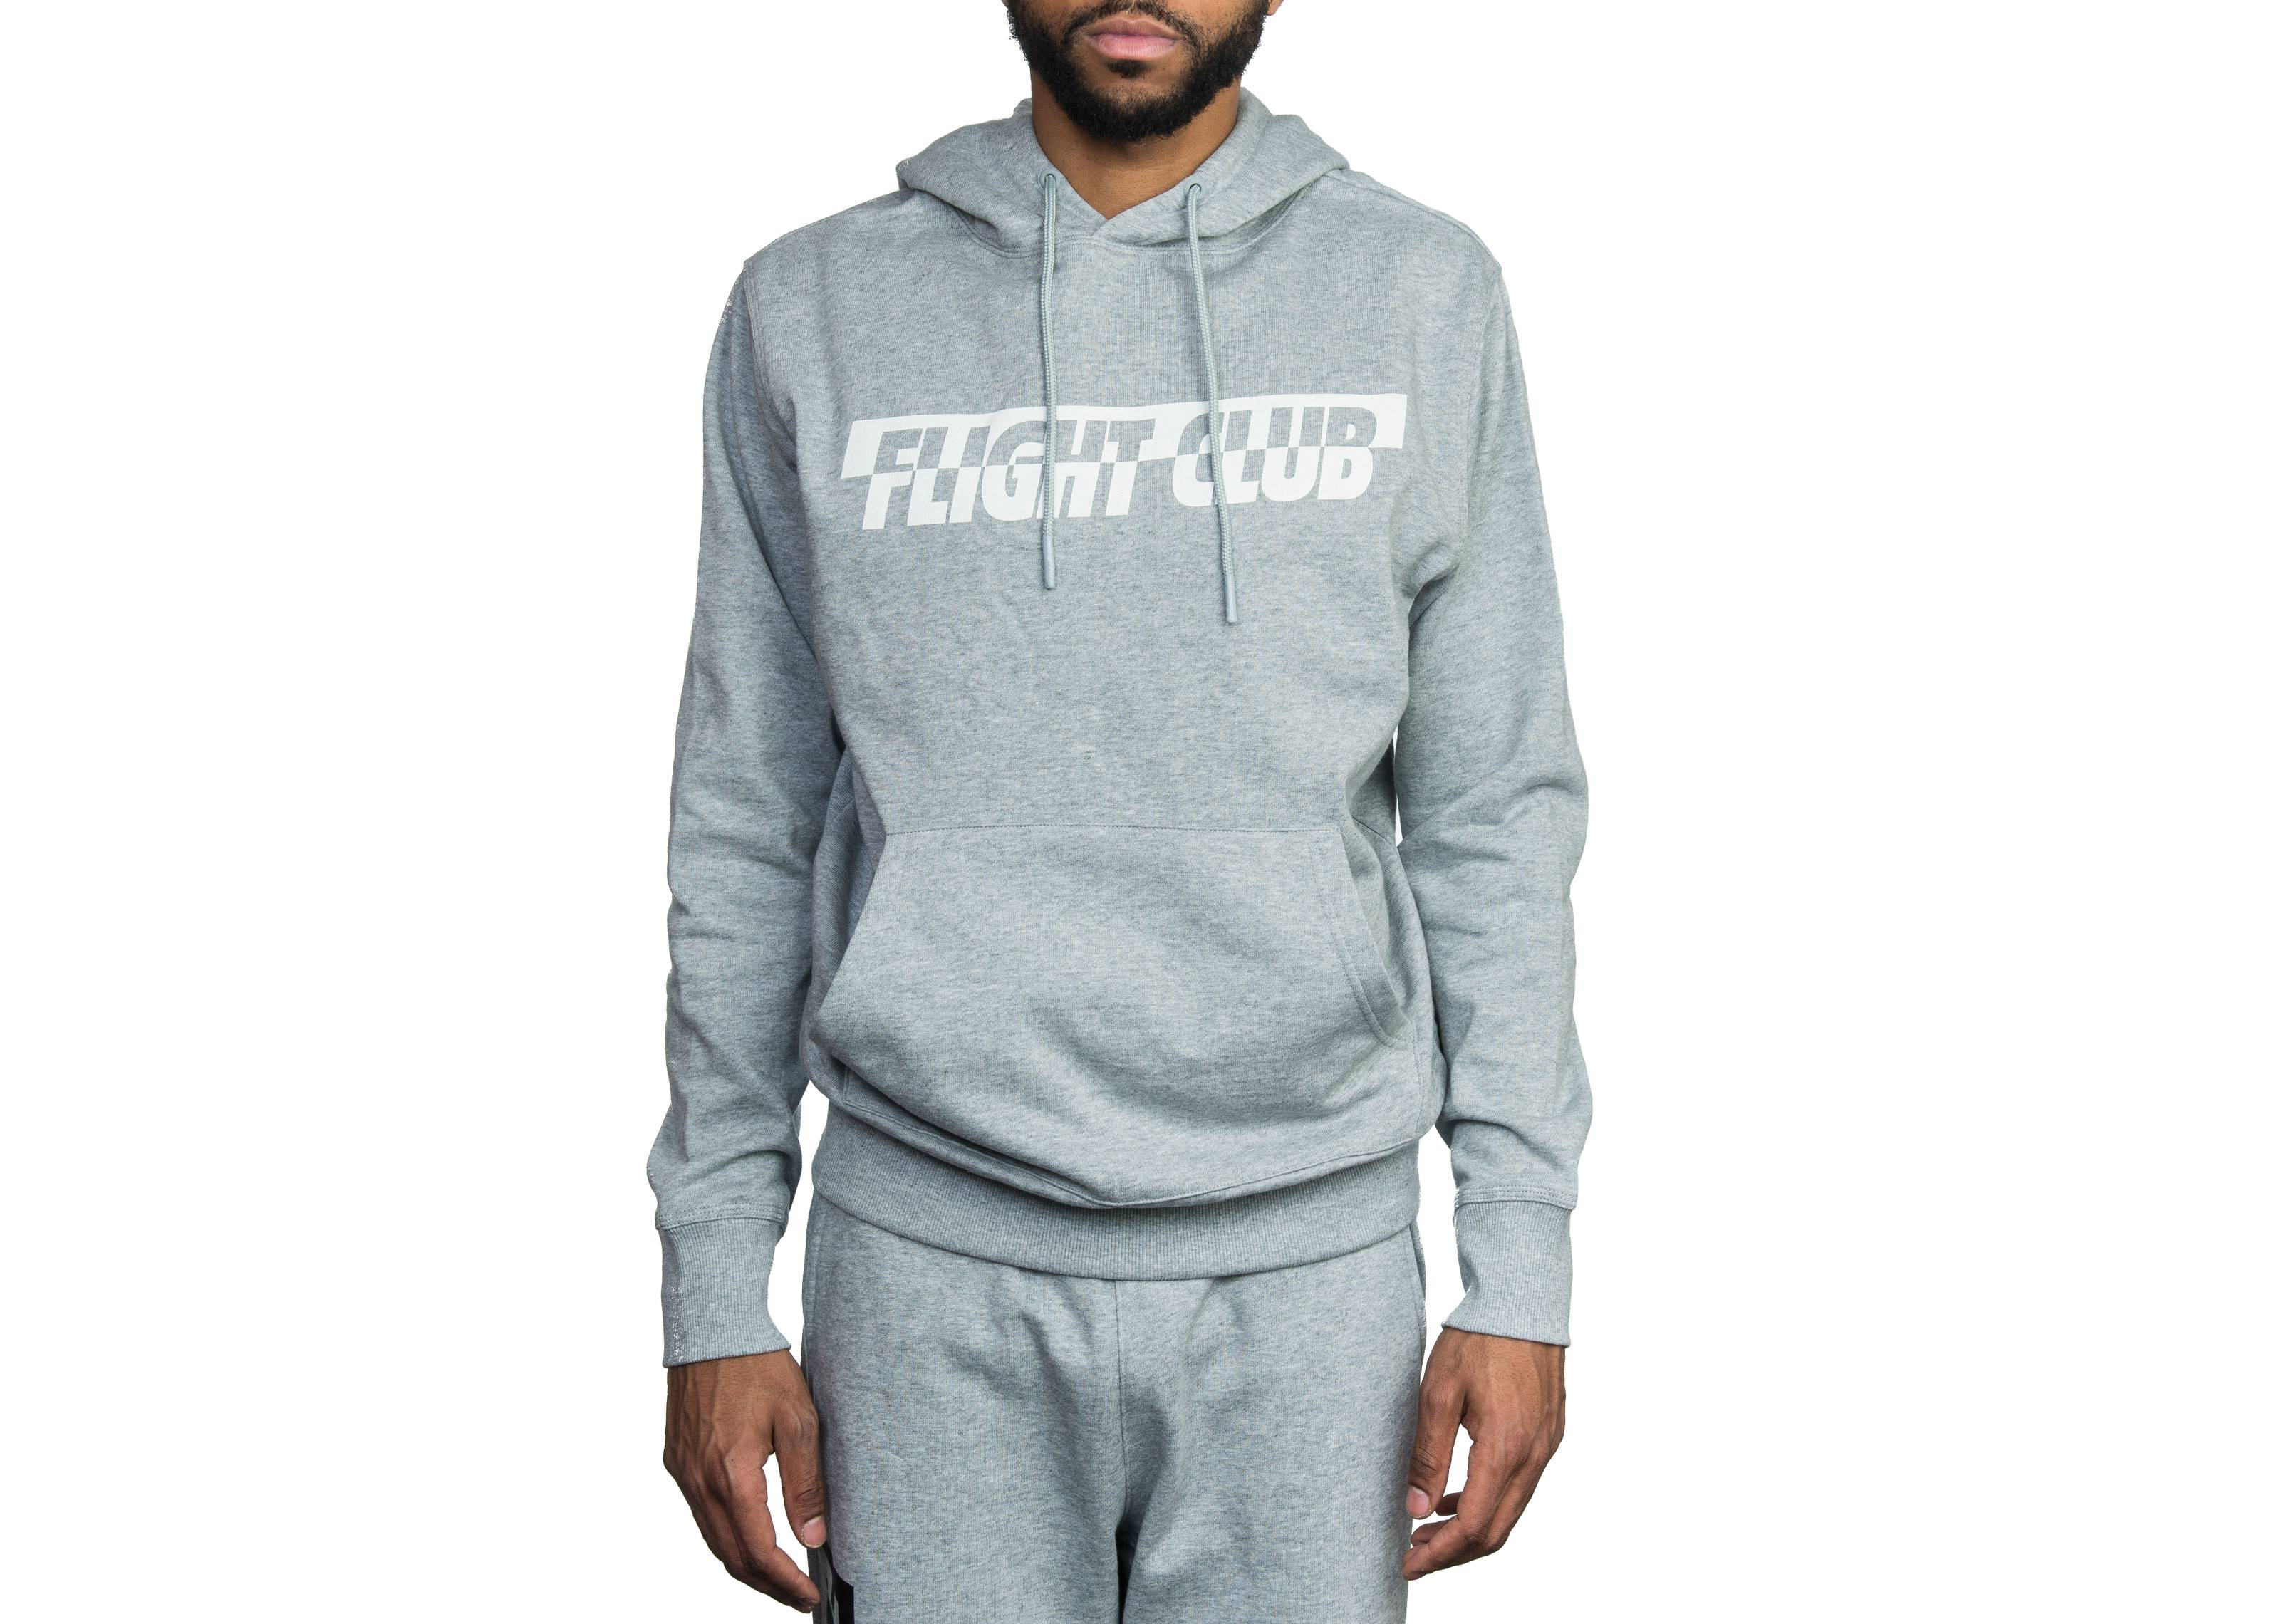 Foundation v2 Hoody